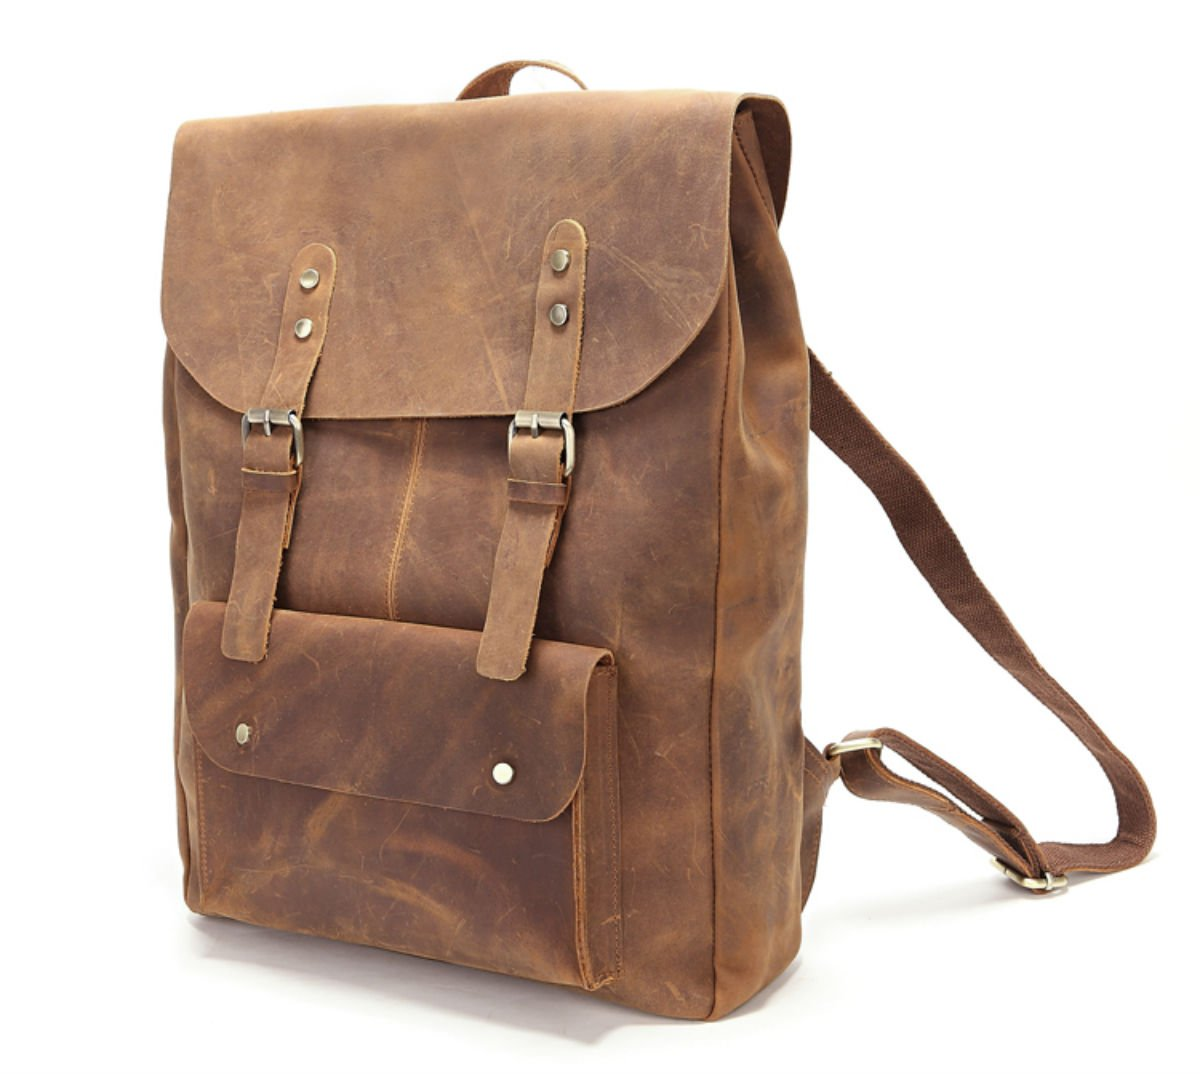 Genuine Leather Real Leather Backpack School Bag Knapsack for Camping